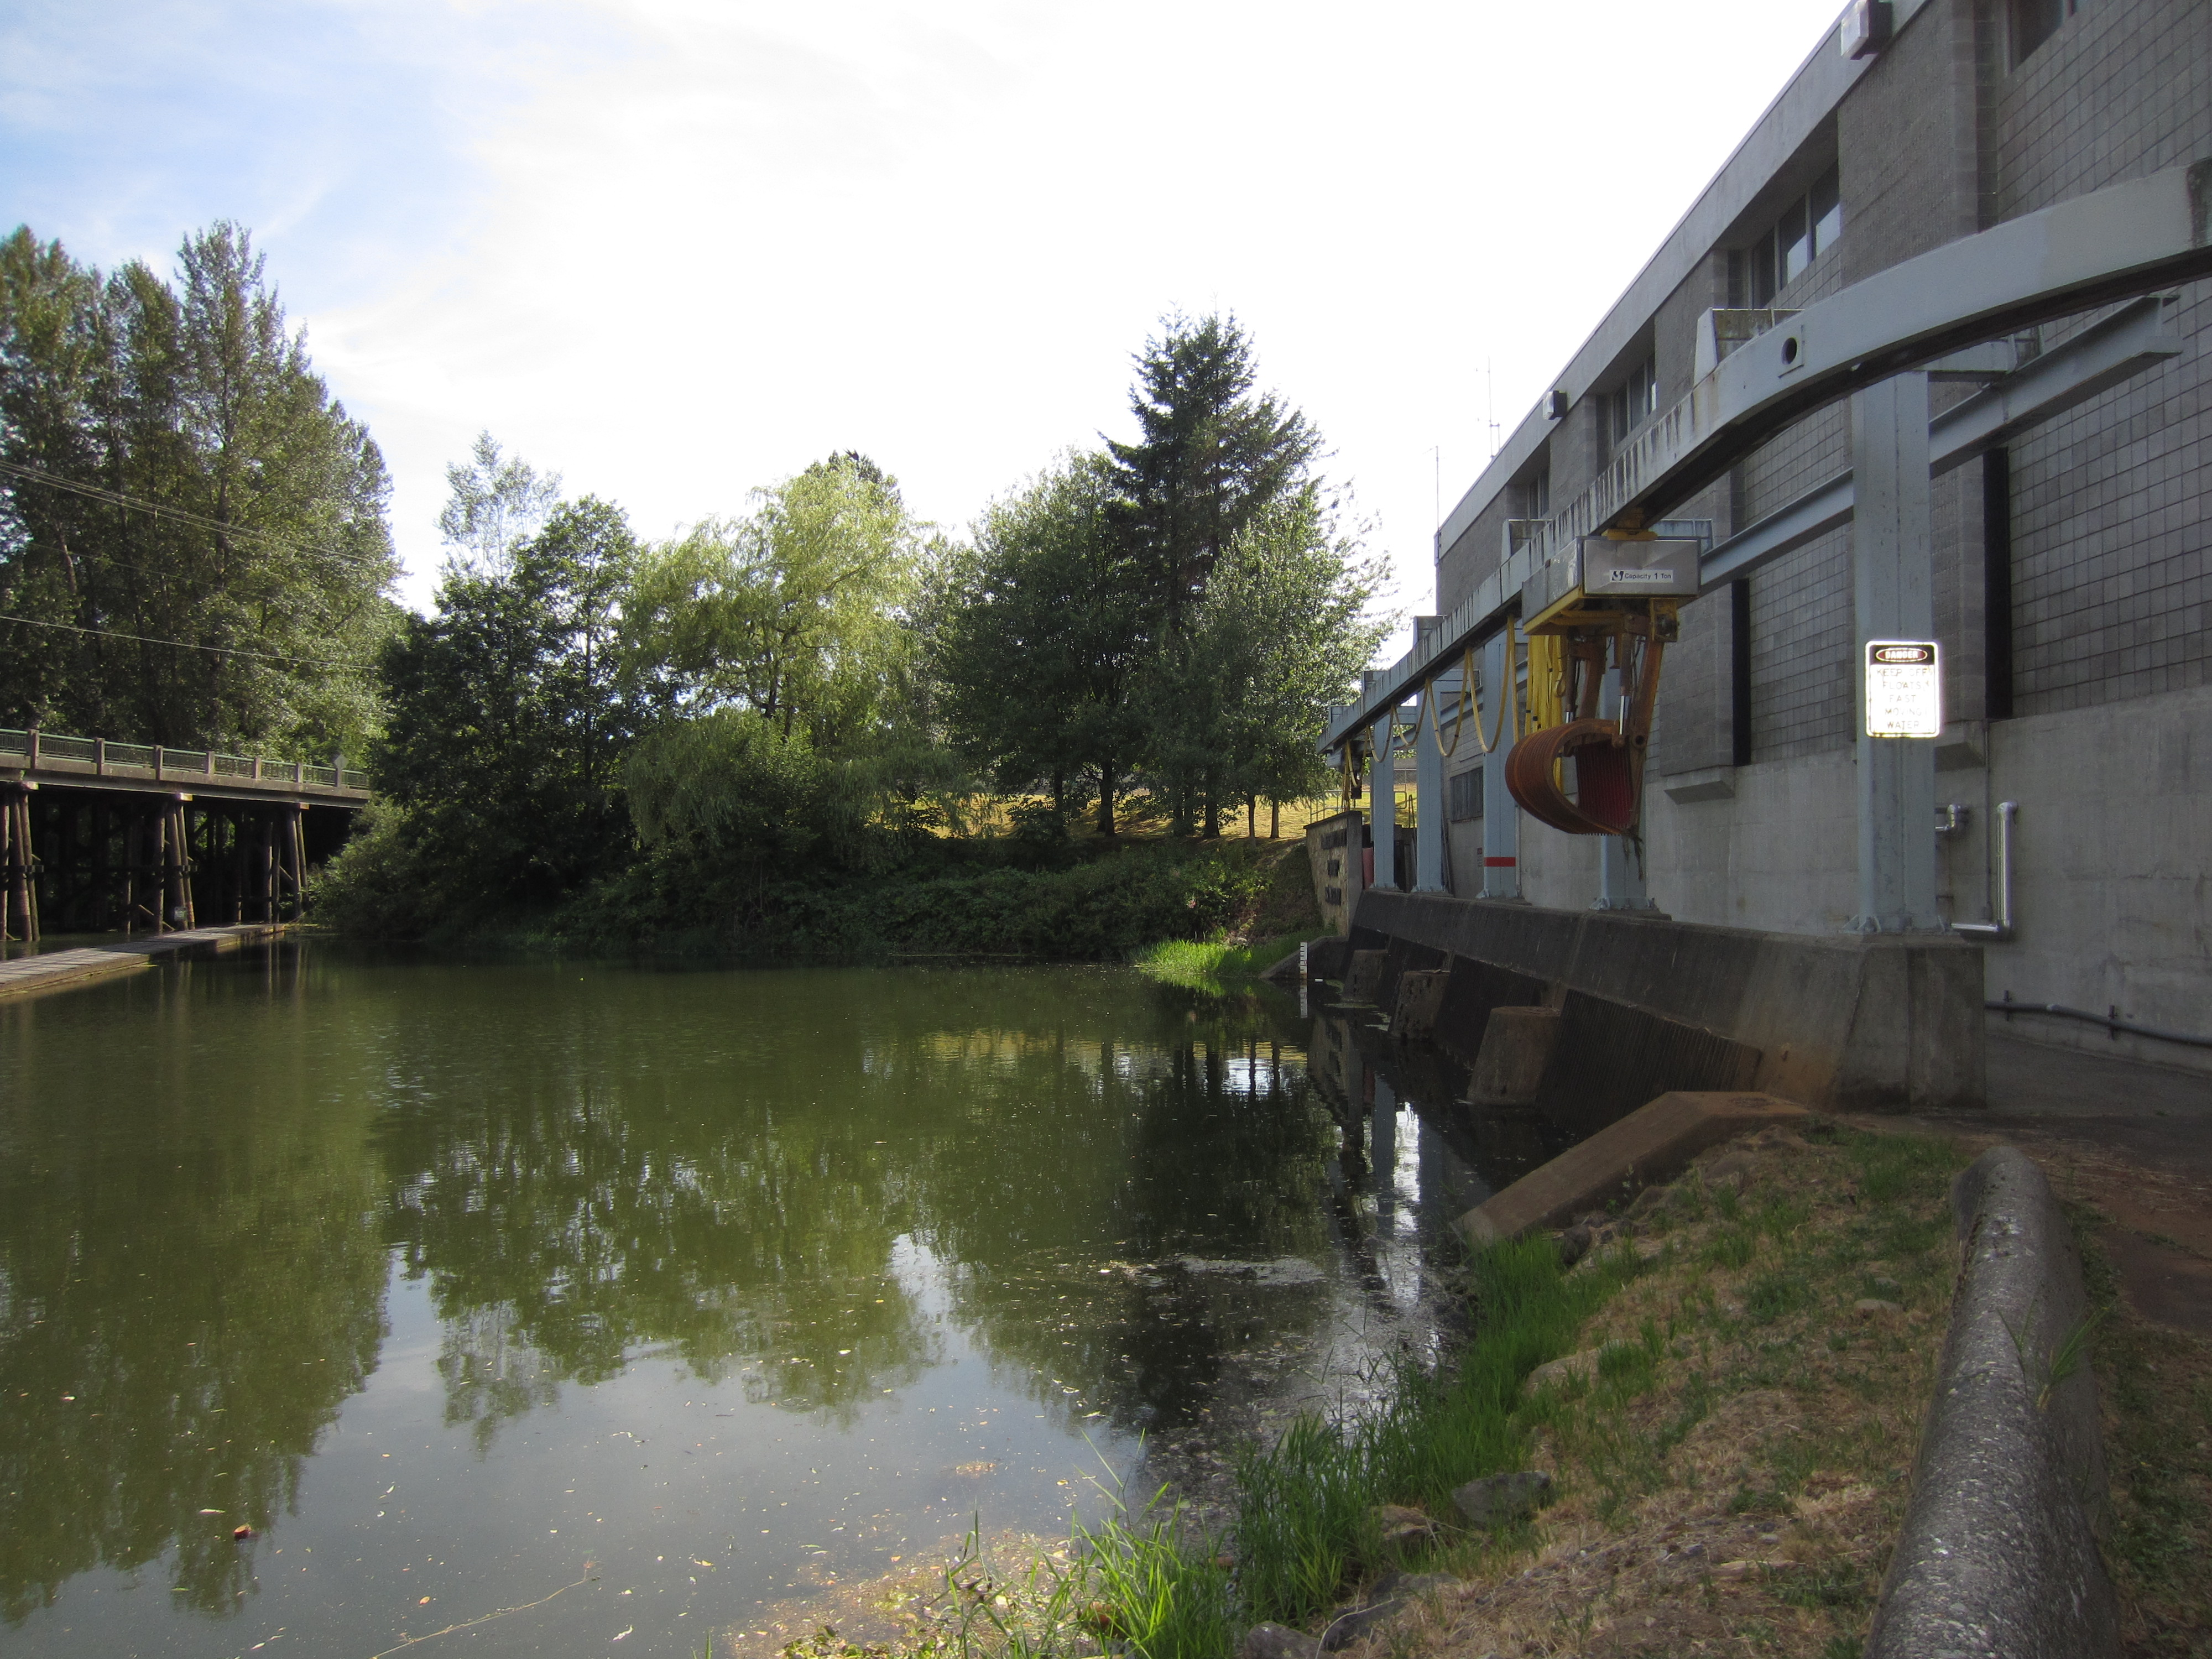 Barrowtown Drainage Pump Station in the City of Abbotsford